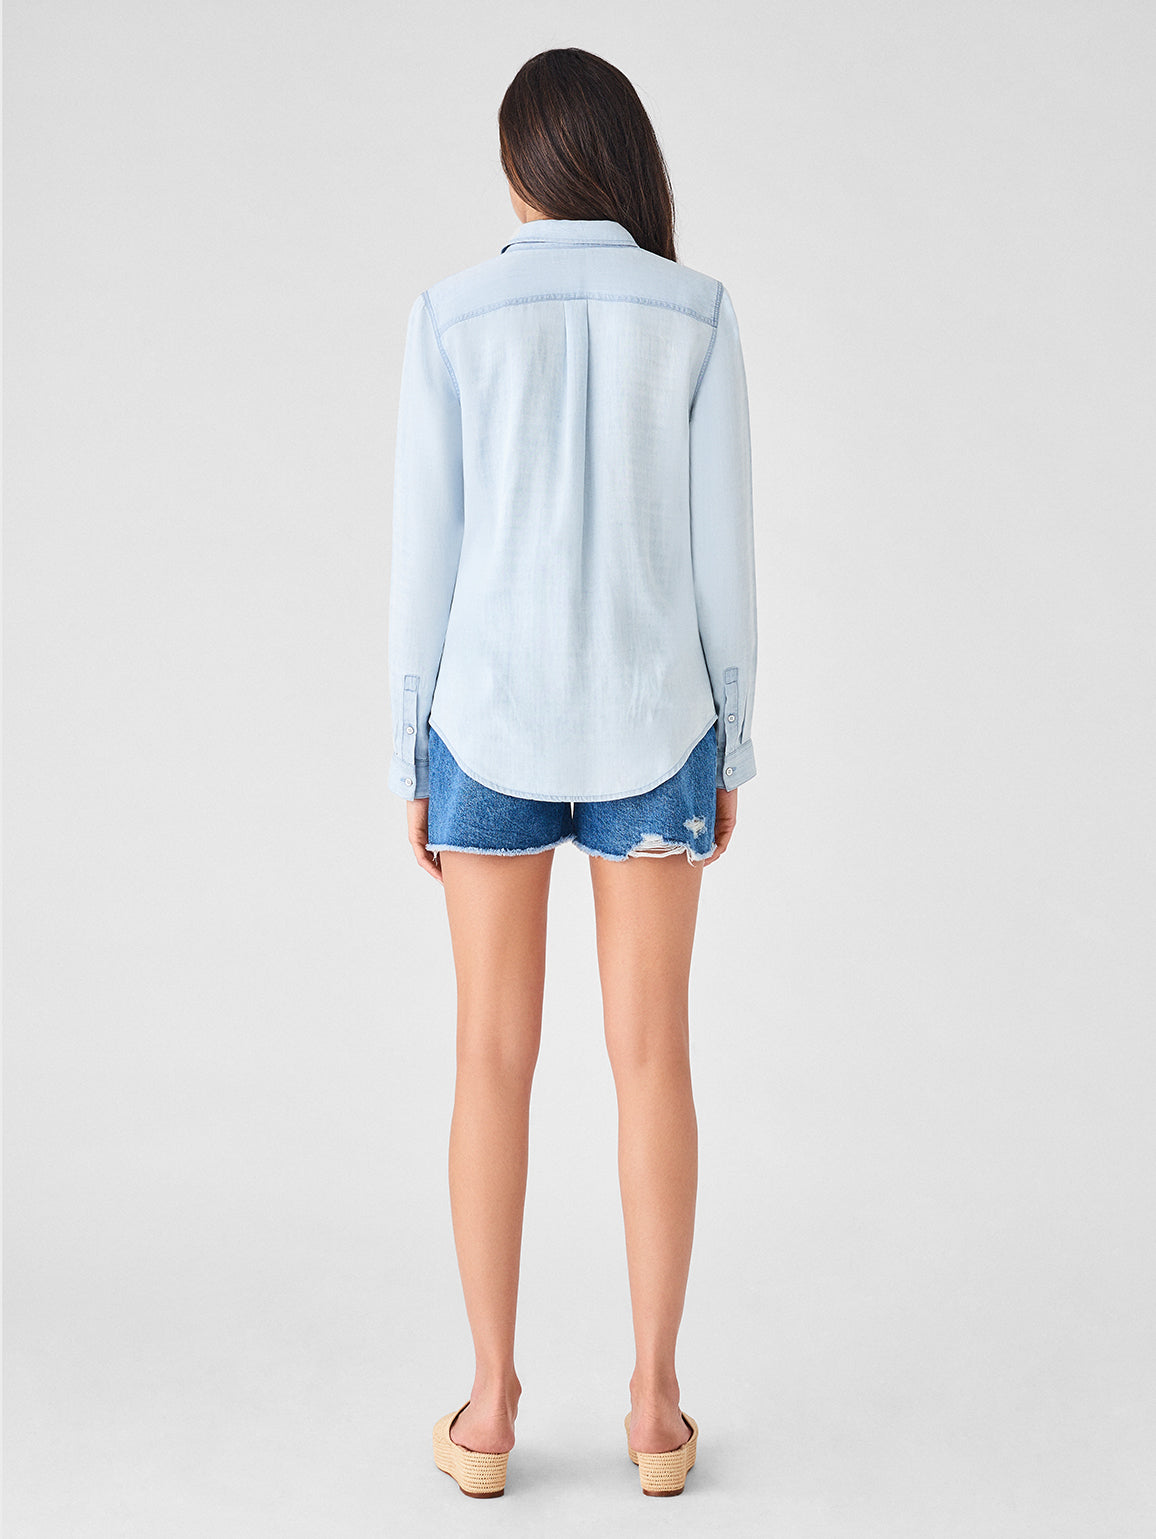 Shirt - Mercer & Spring Top | Bleach - DL1961